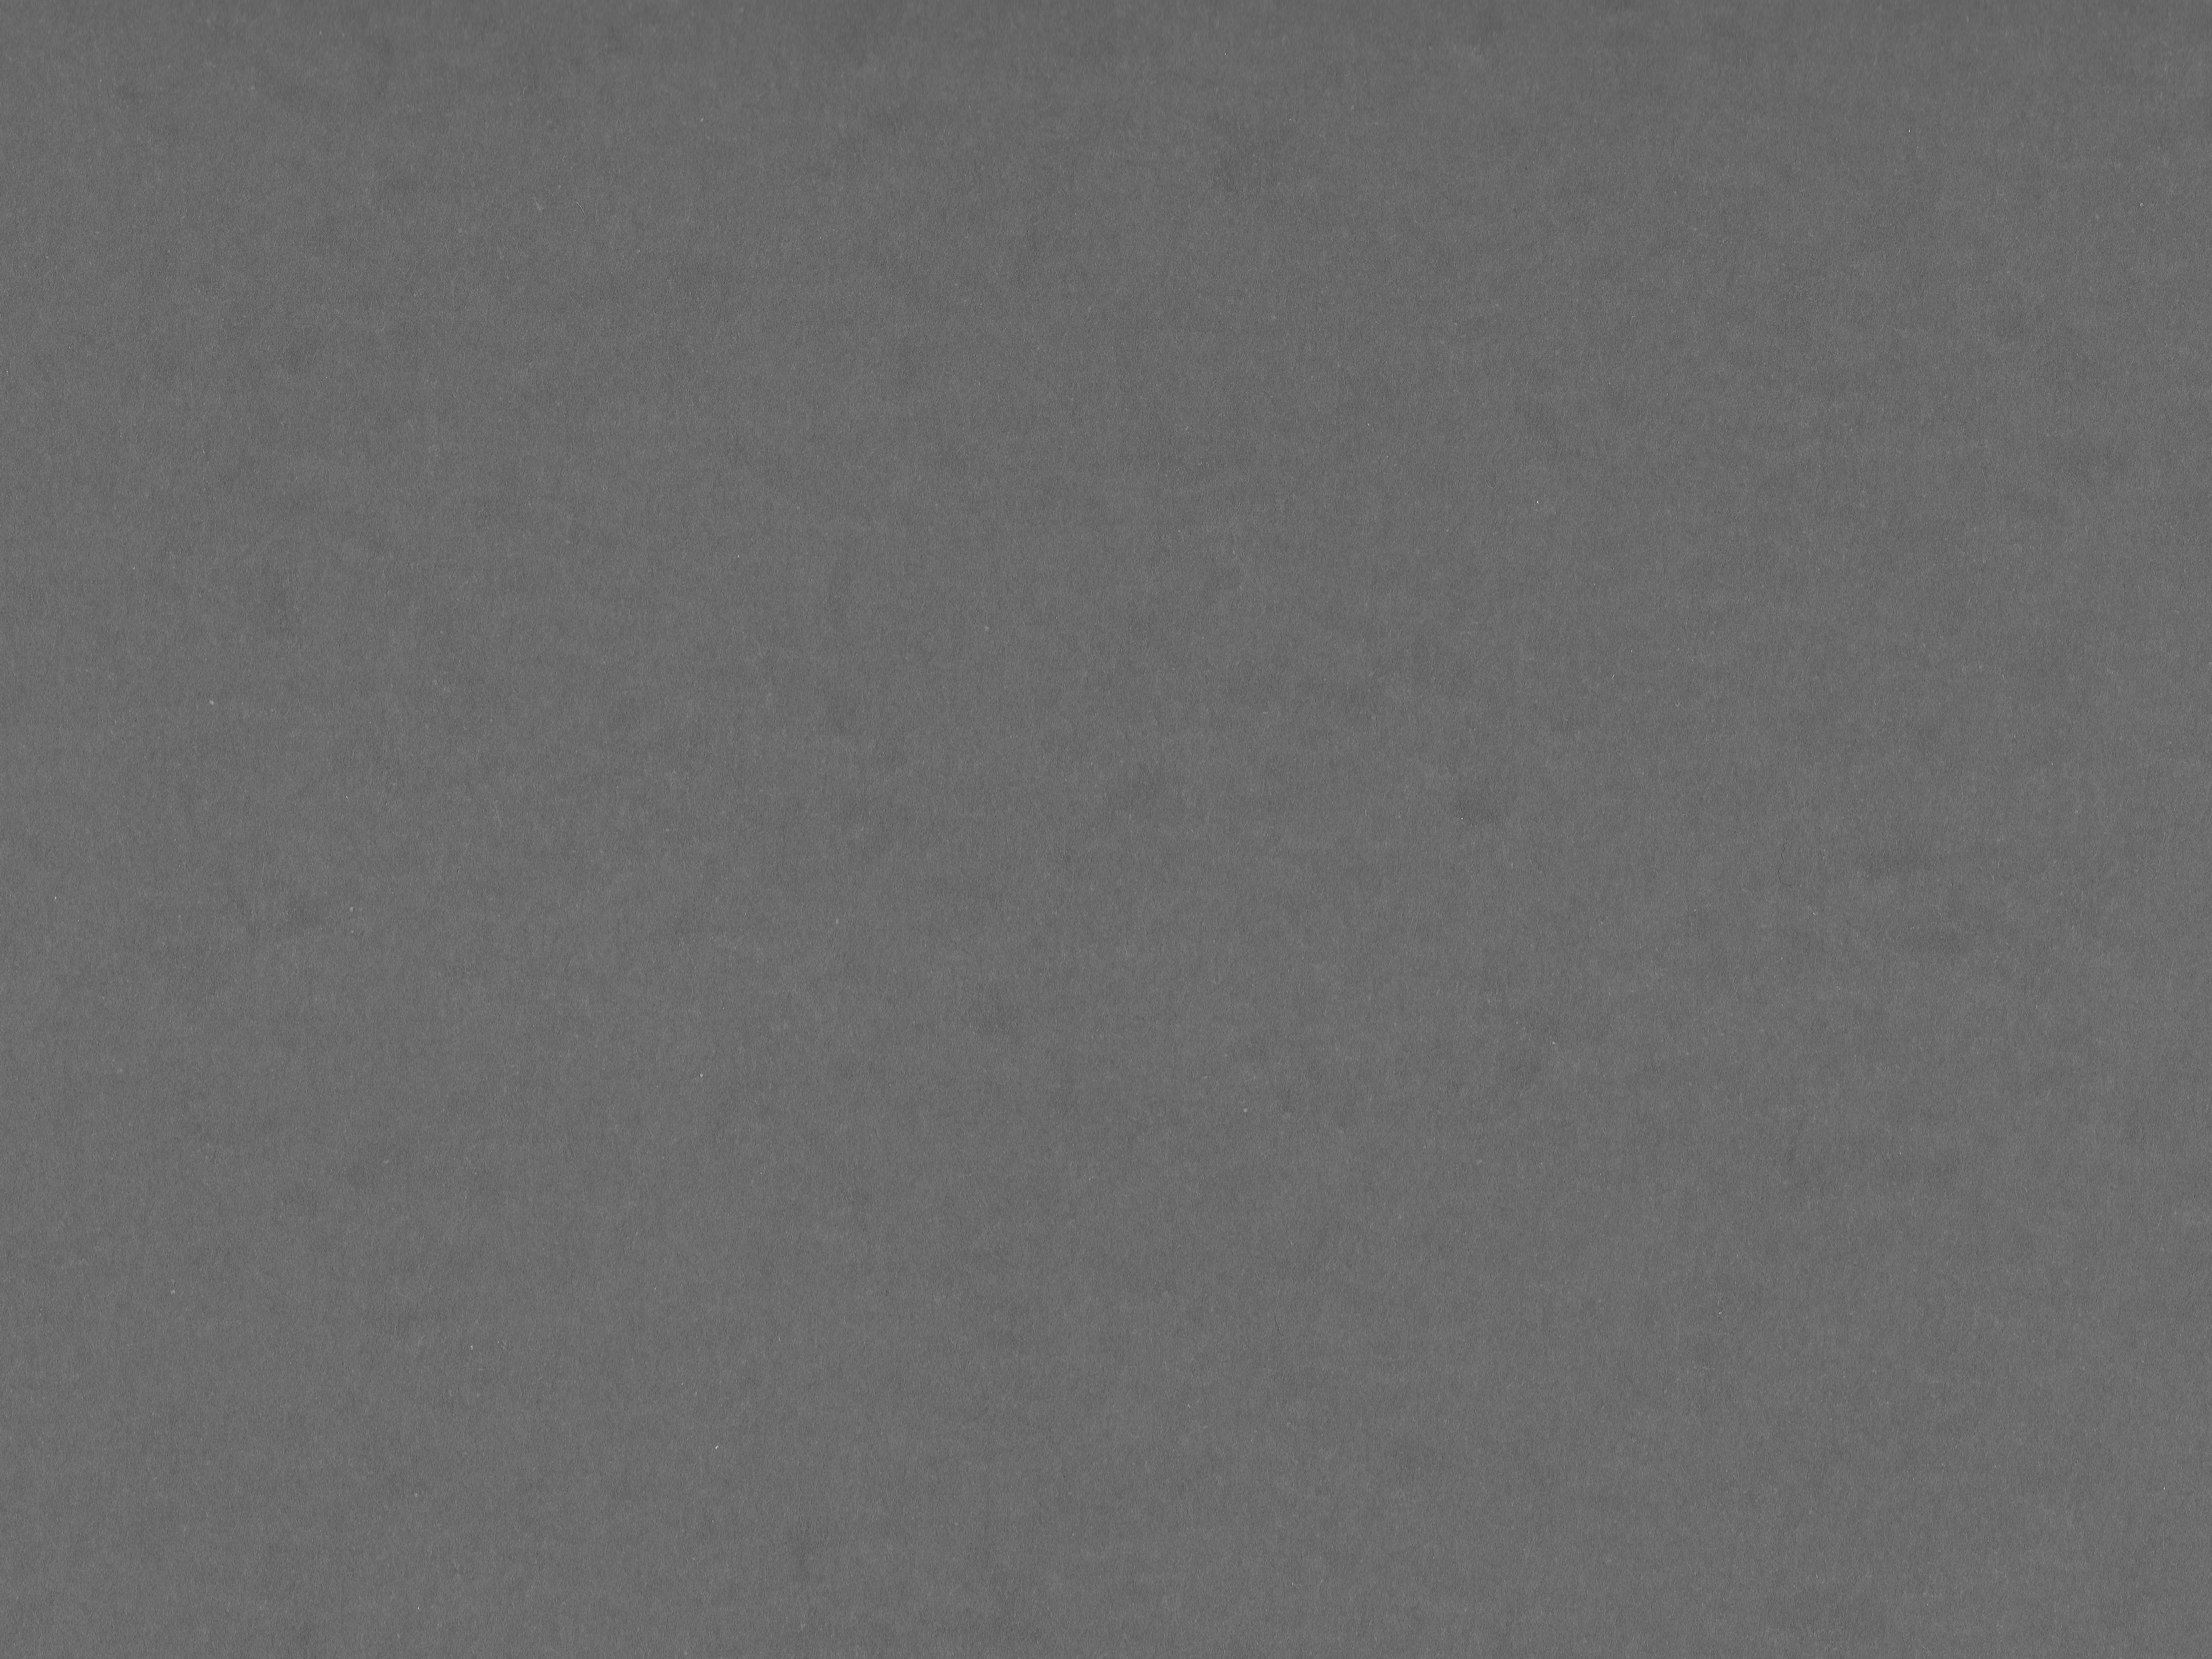 Charcoal Gray Card Stock Paper Texture Picture Free